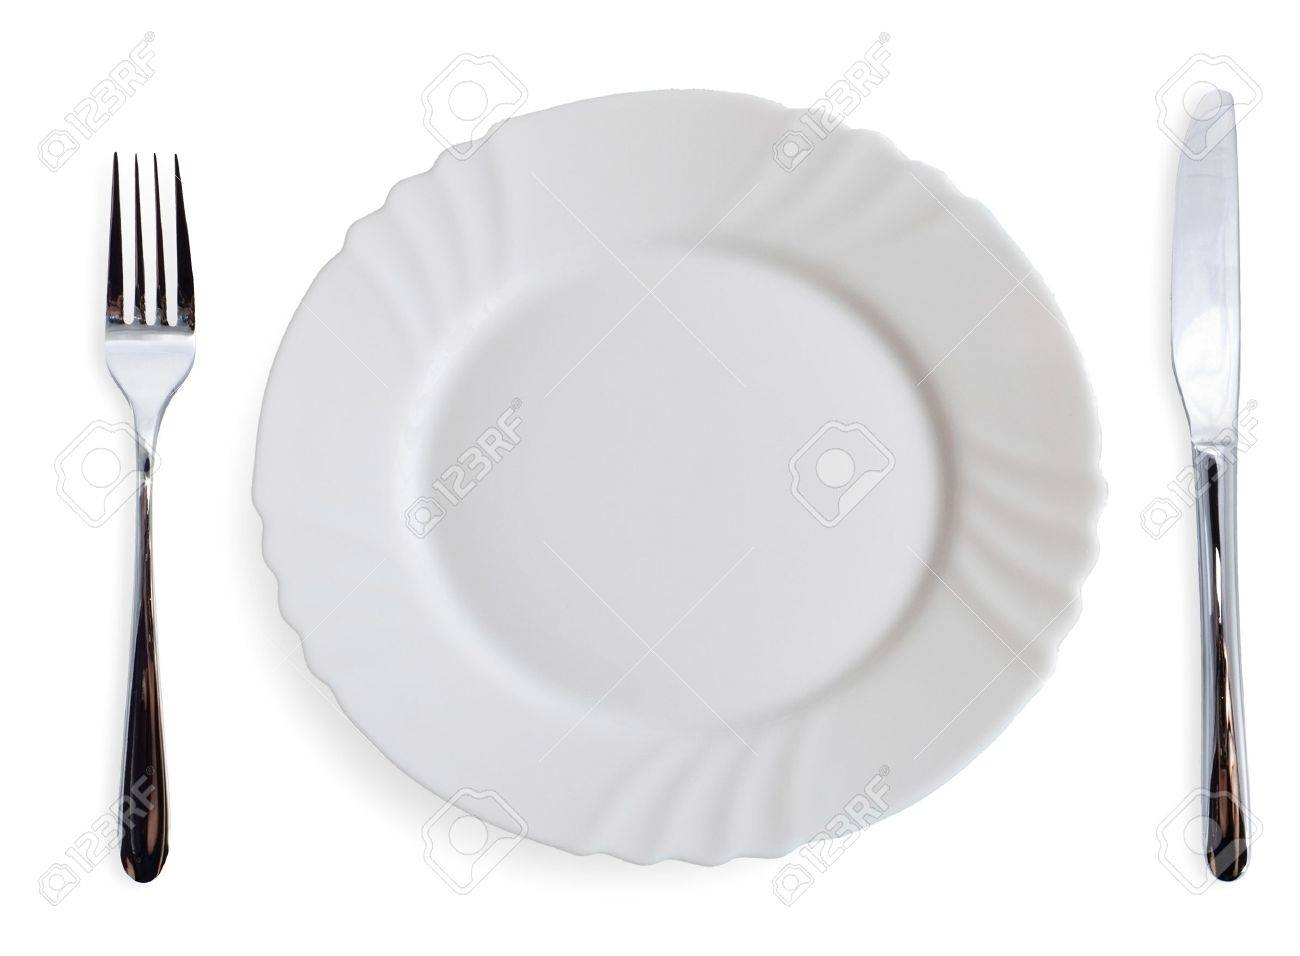 Stock Photo   White Dining Plates And Silverware On White Background